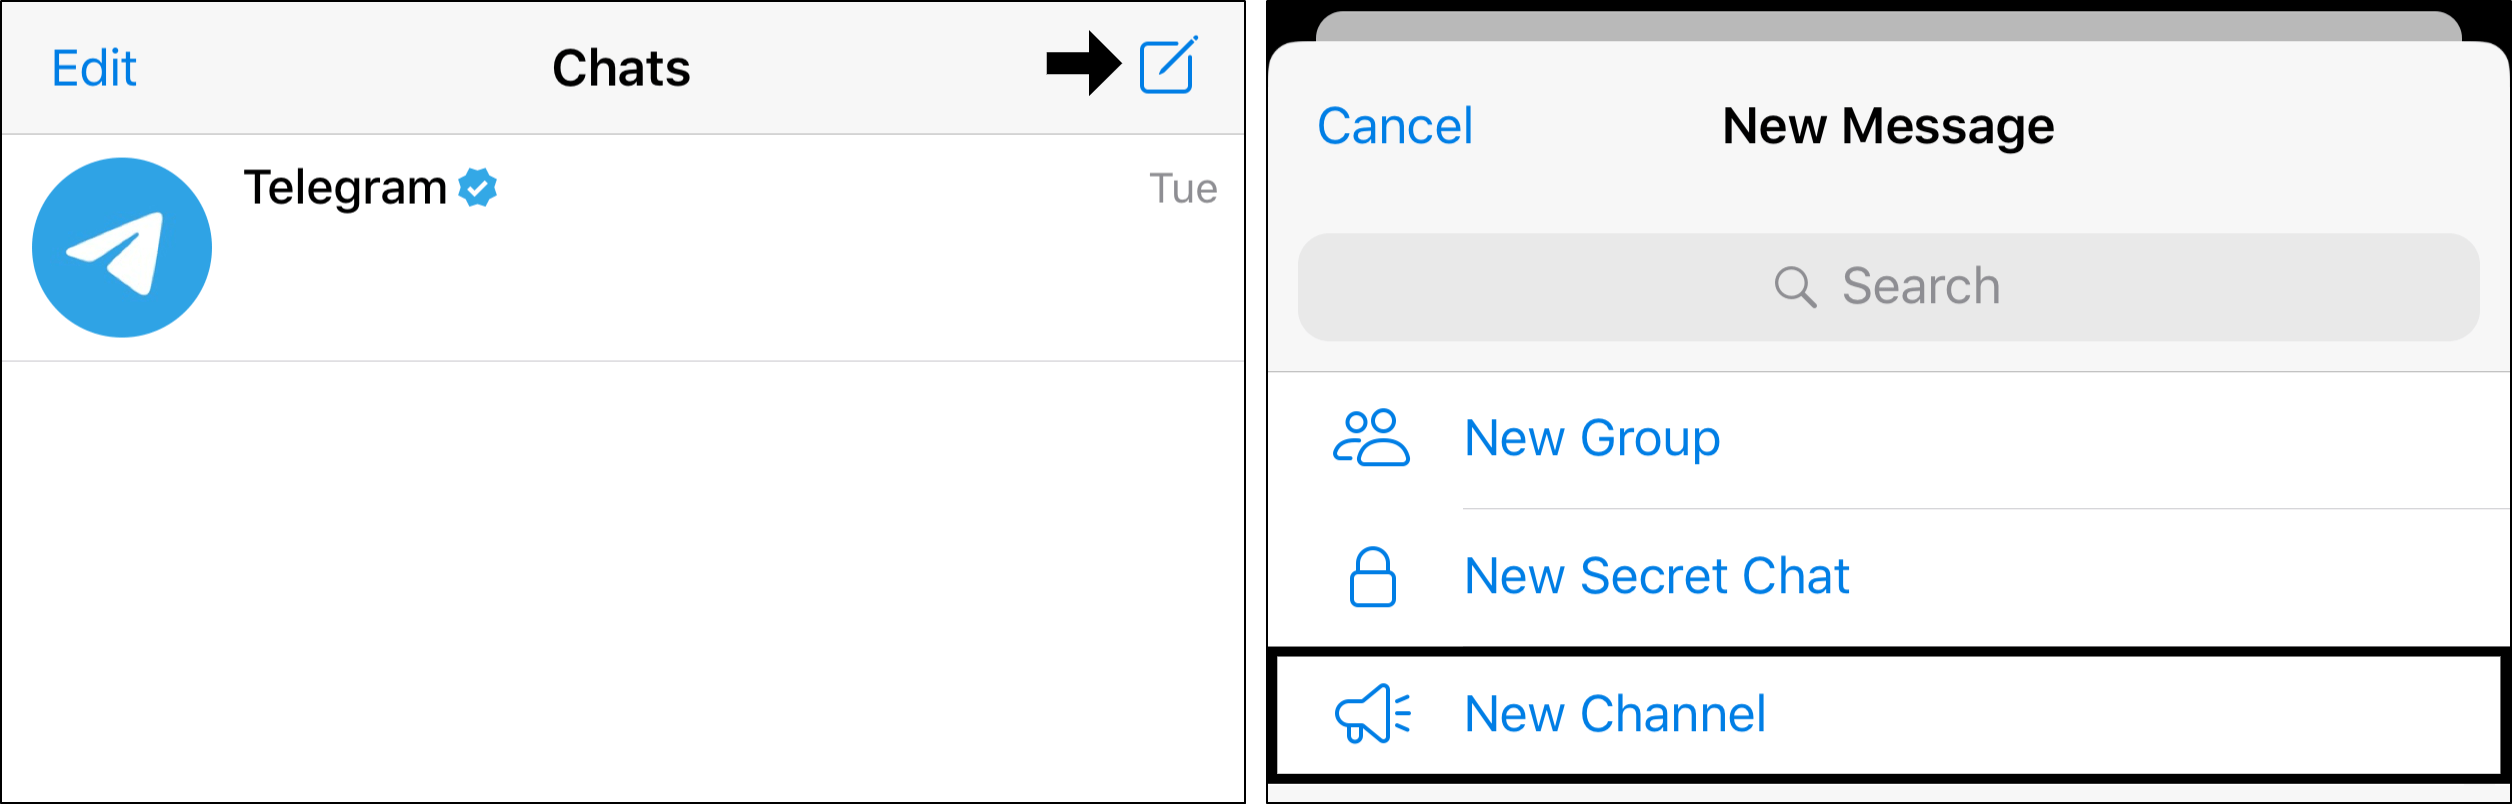 create channels to send messages to yourself on telegram on iPhone, iPad and Android